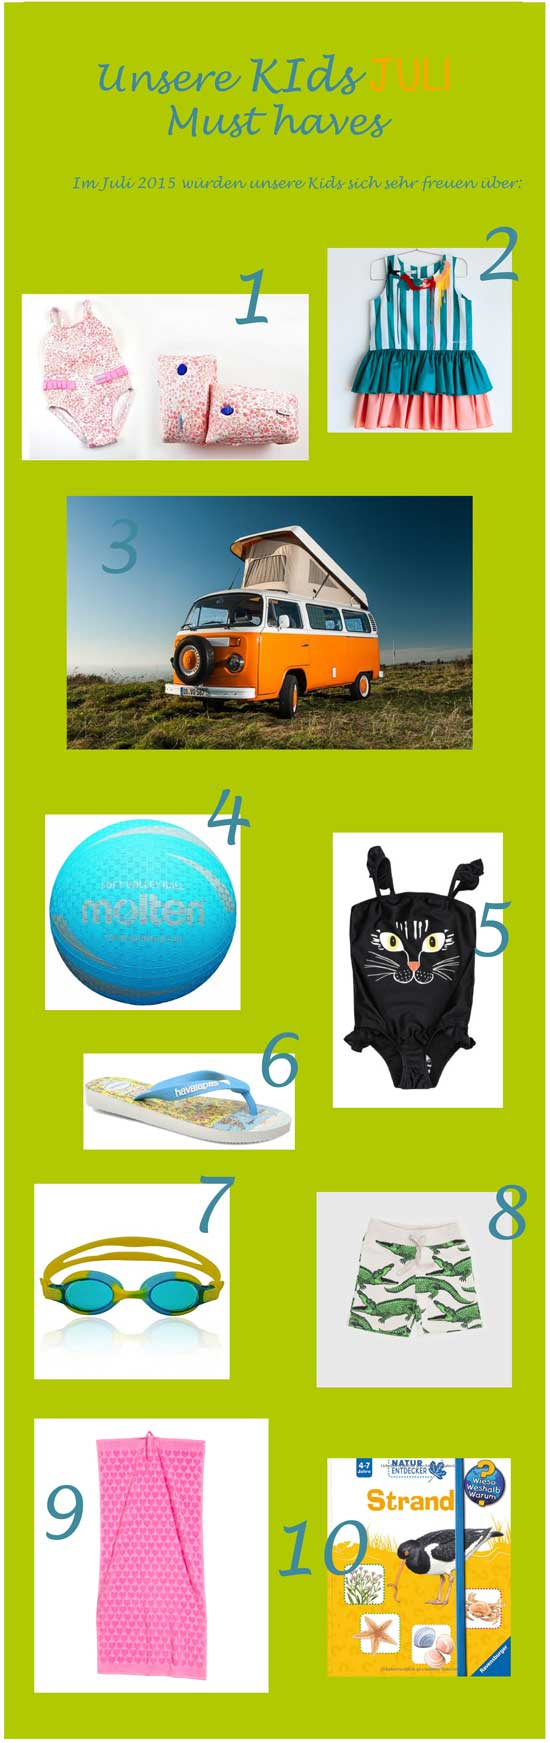 Kids-Juli-Must-haves-2015